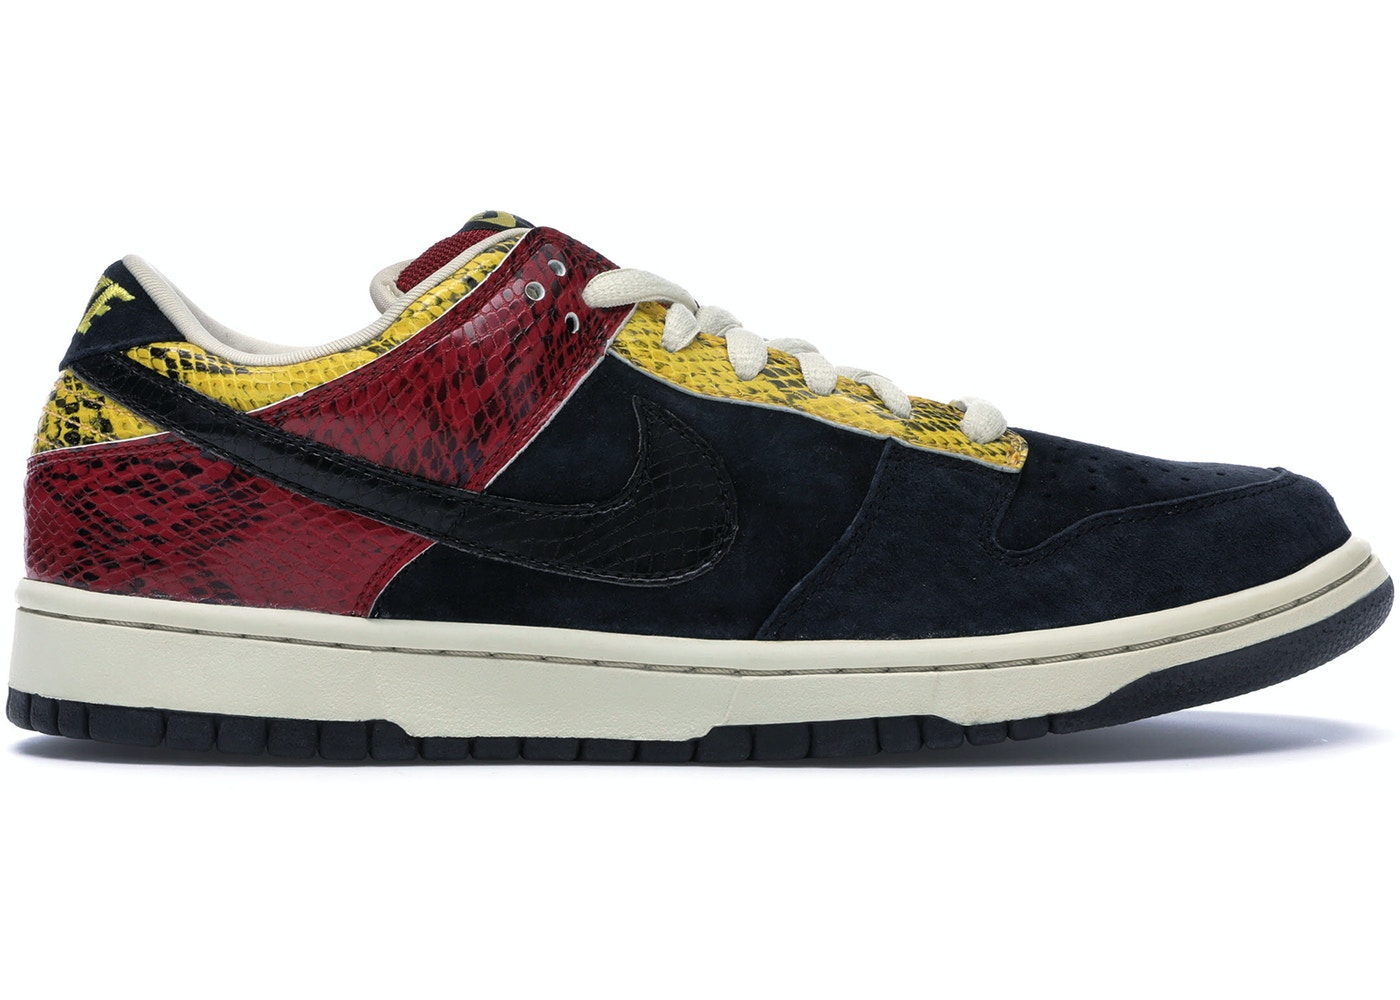 new concept accd6 d5c7c Nike SB Dunk Low Coral Snake - 313170-701